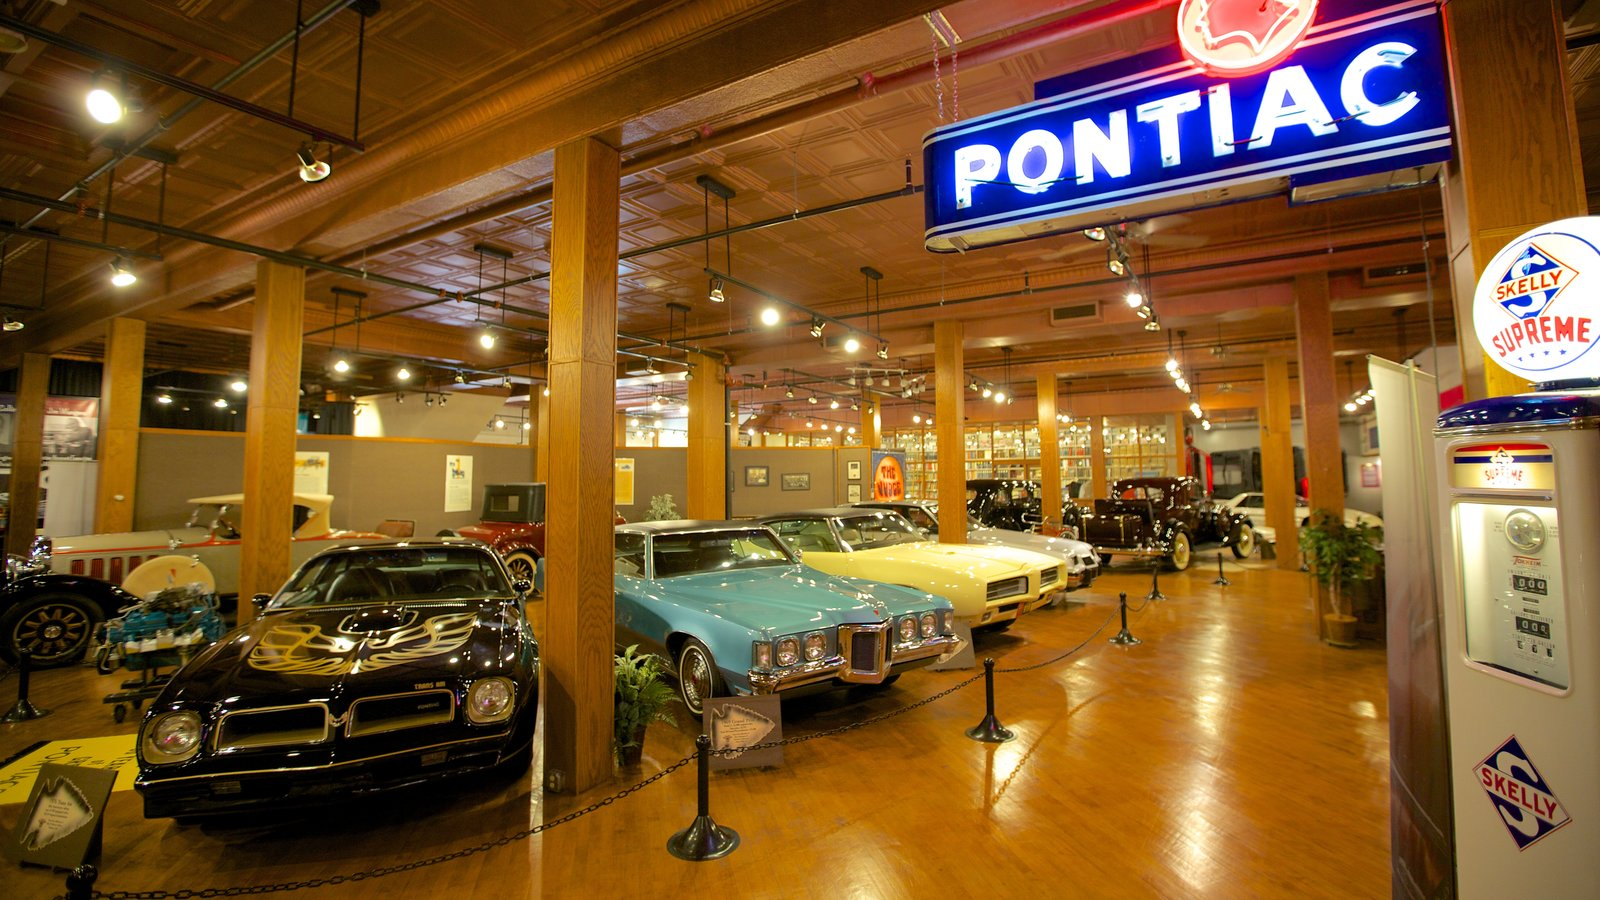 Attraction Pictures: View Images of Pontiac-Oakland Automobile Museum